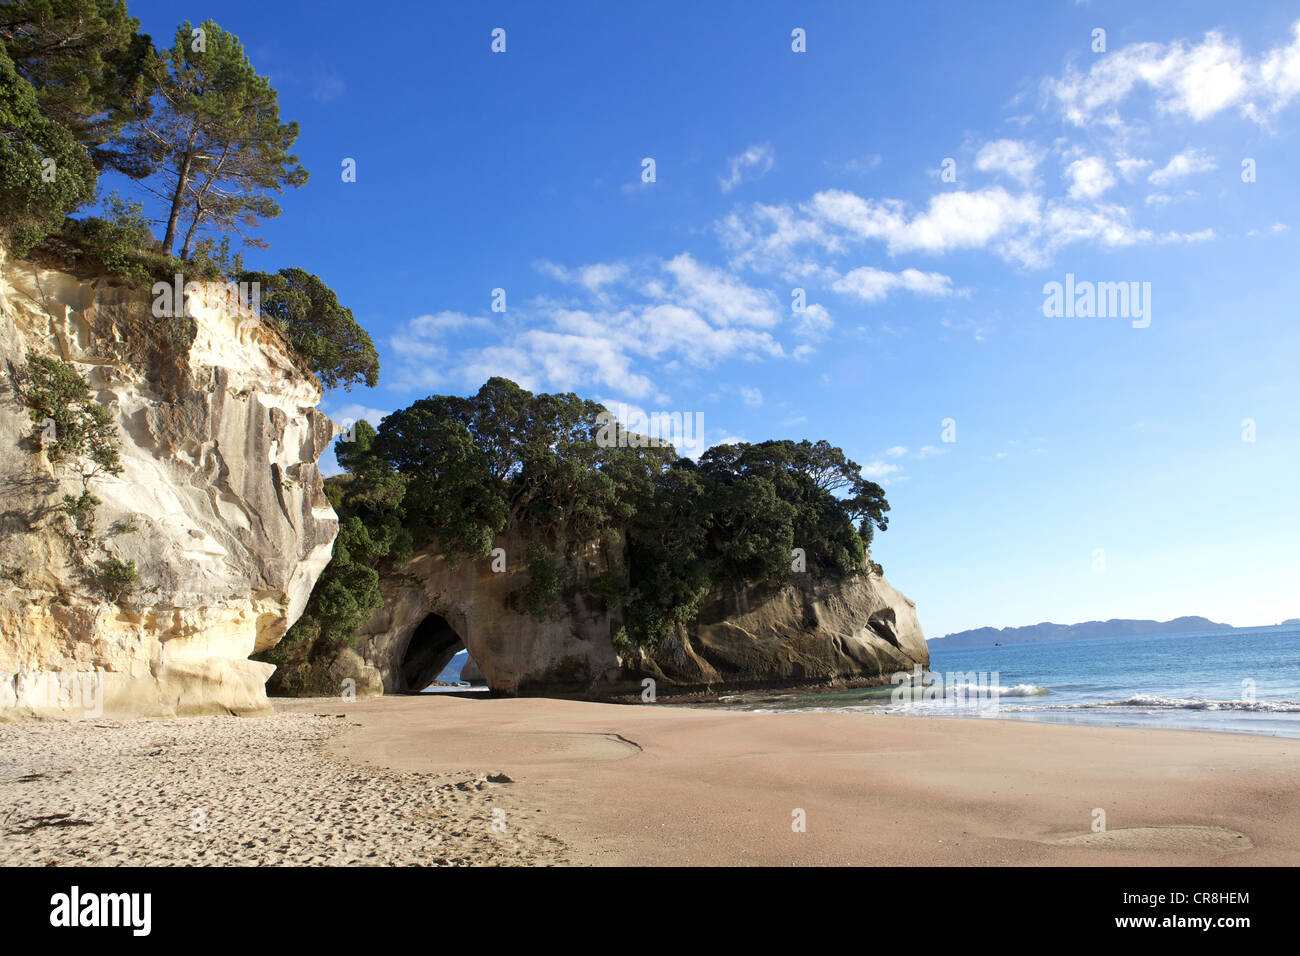 Te Whanganui A Hei Cathedral Cove New Zealand Stock Photo